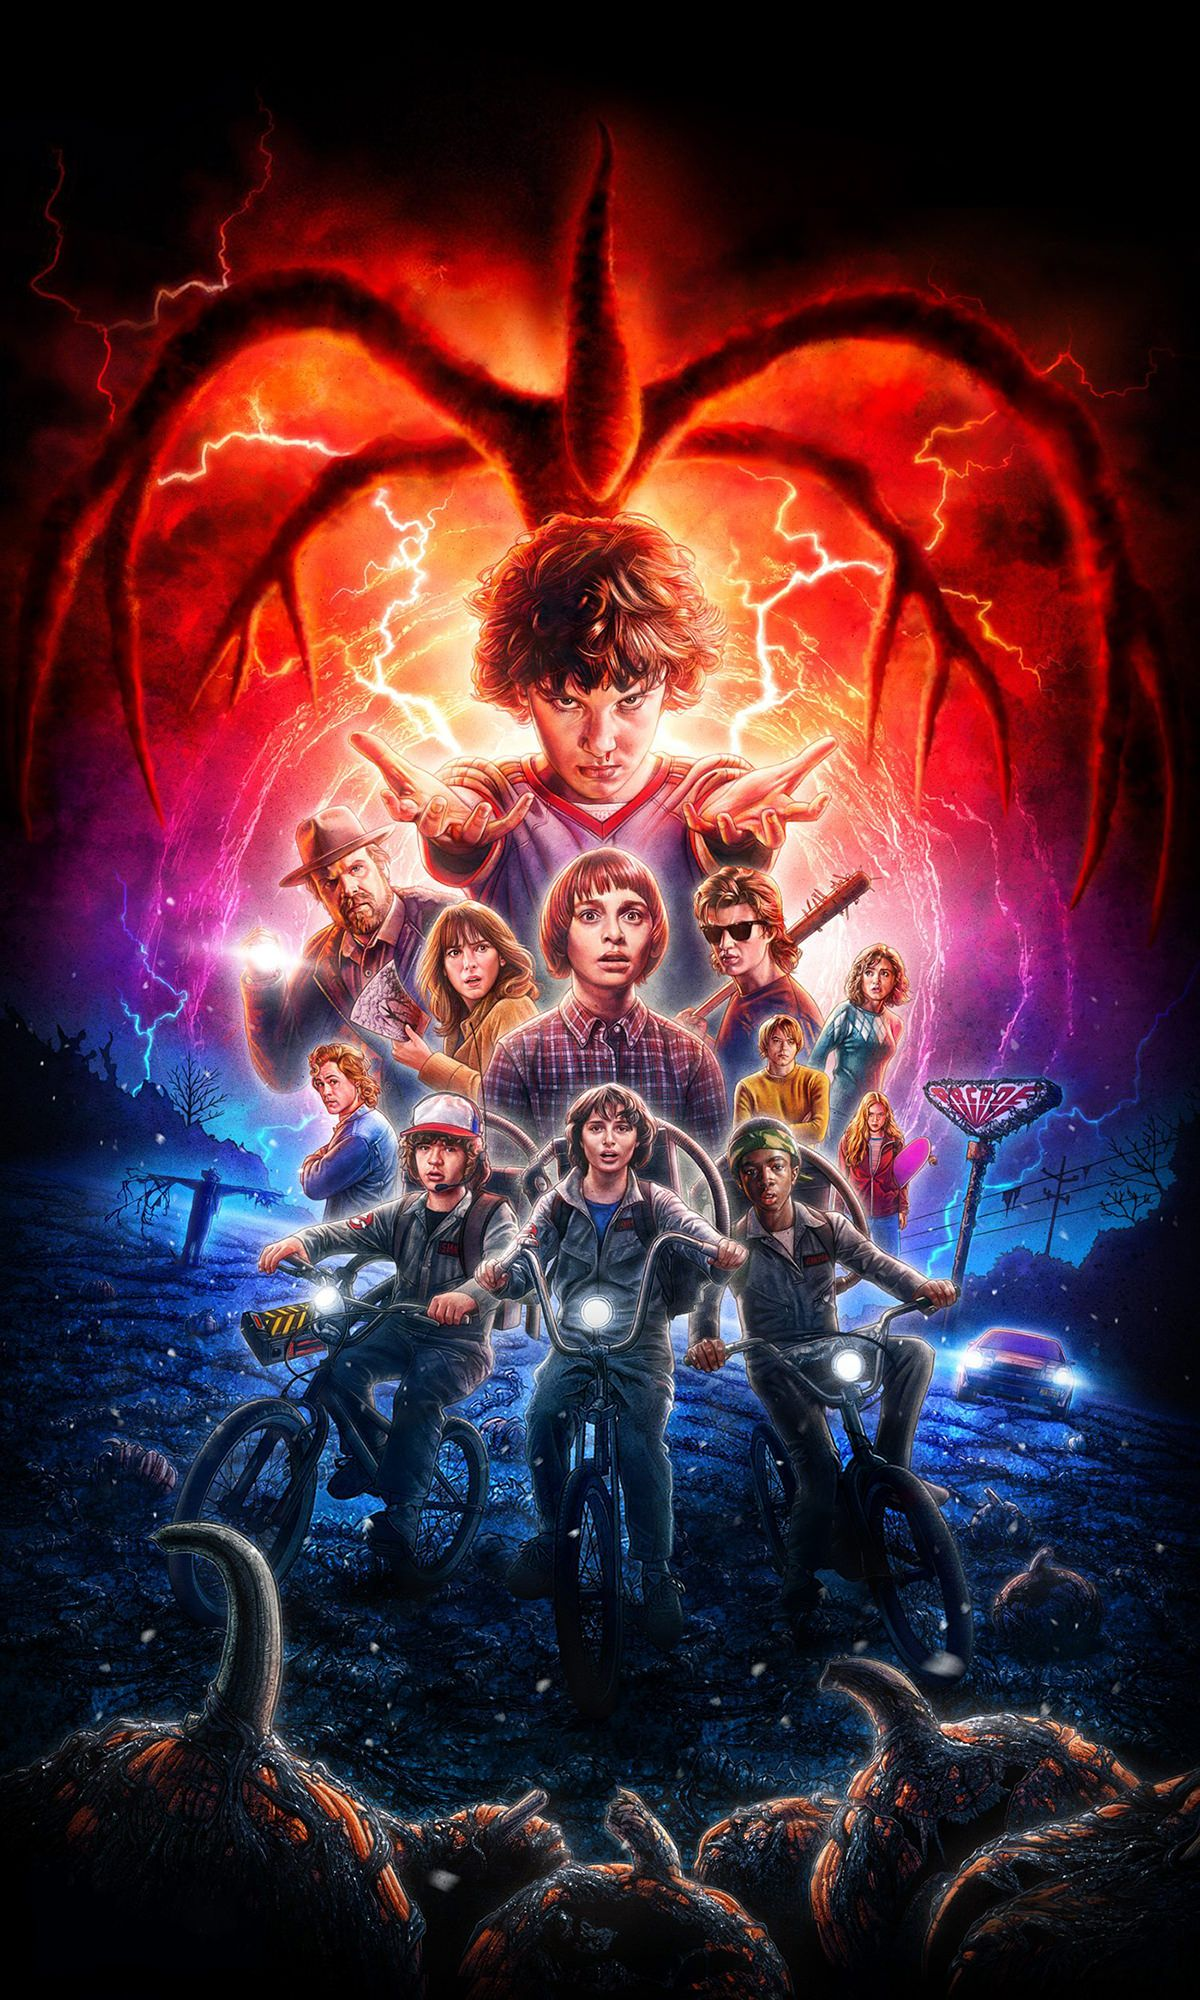 Does anyone have the stranger things 2 poster like this without the logo!?